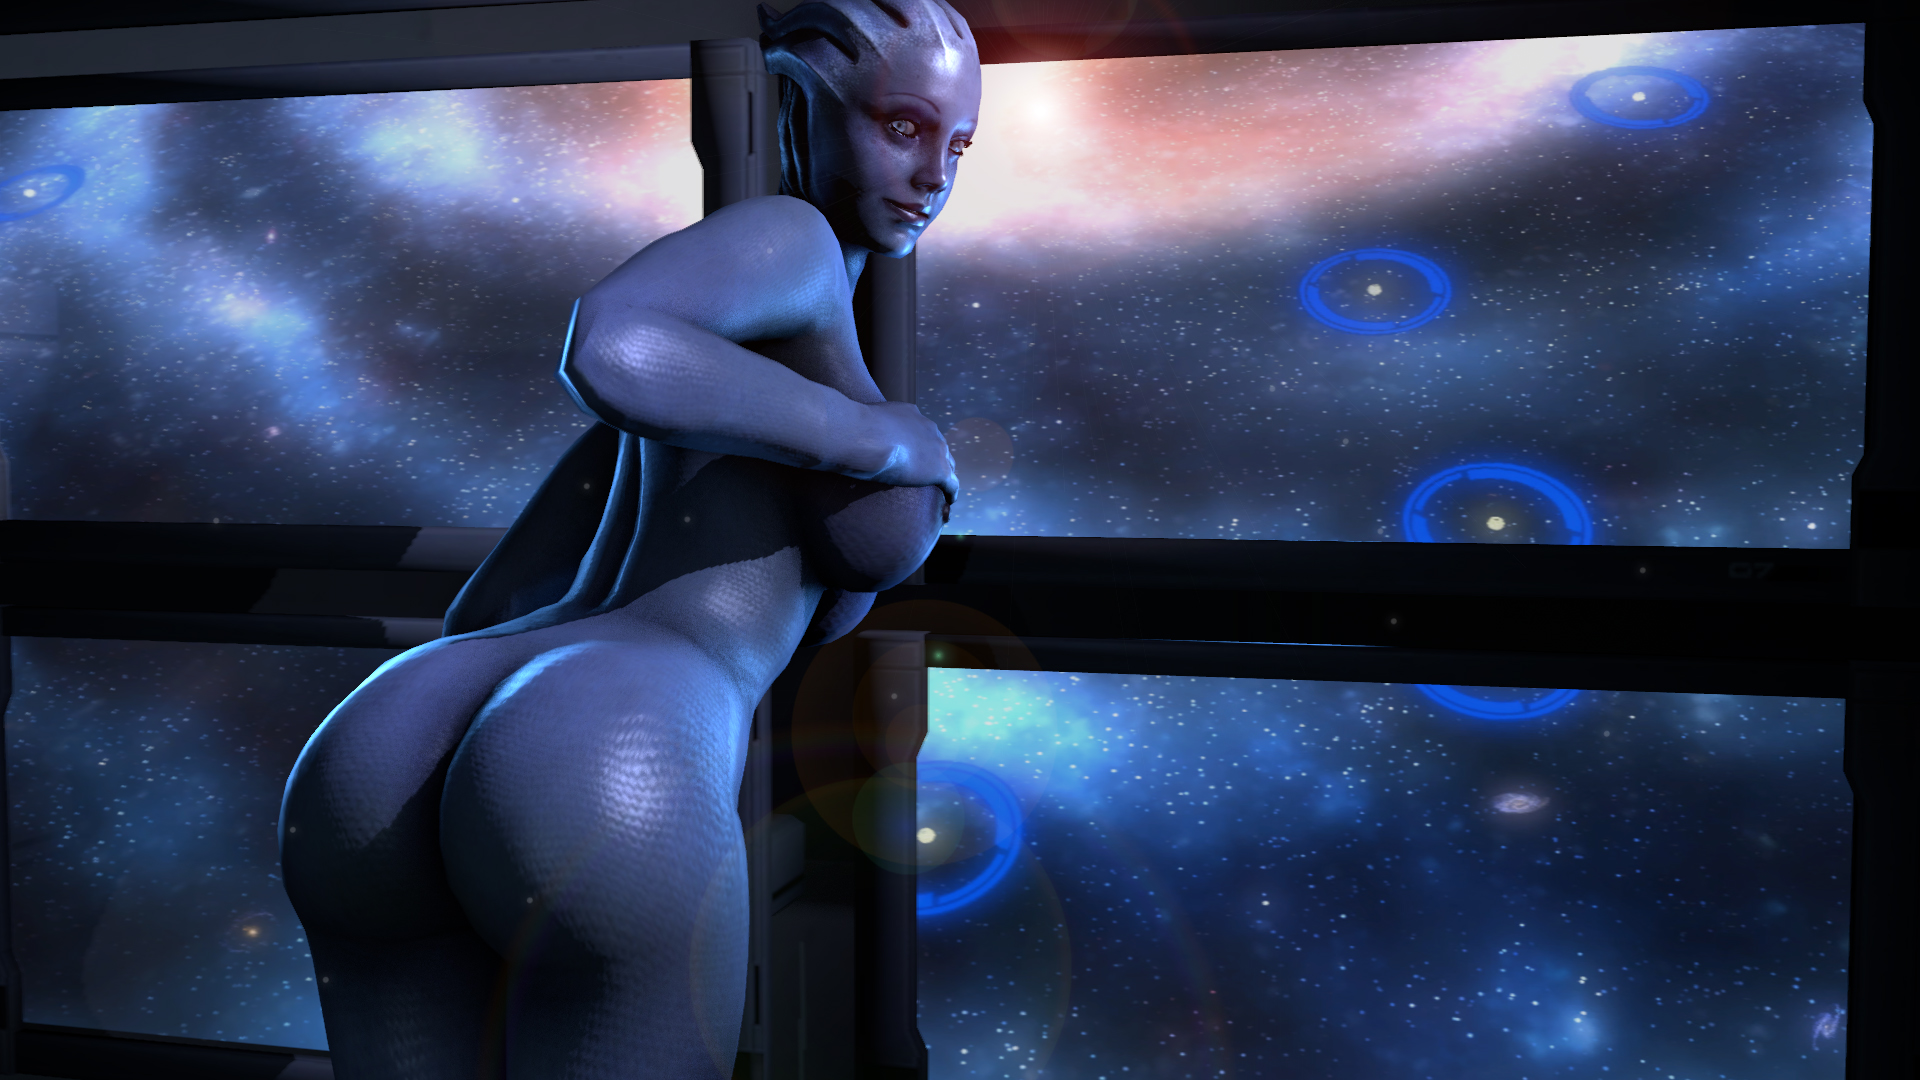 Wallpaper nude picture of mass effect anime movie